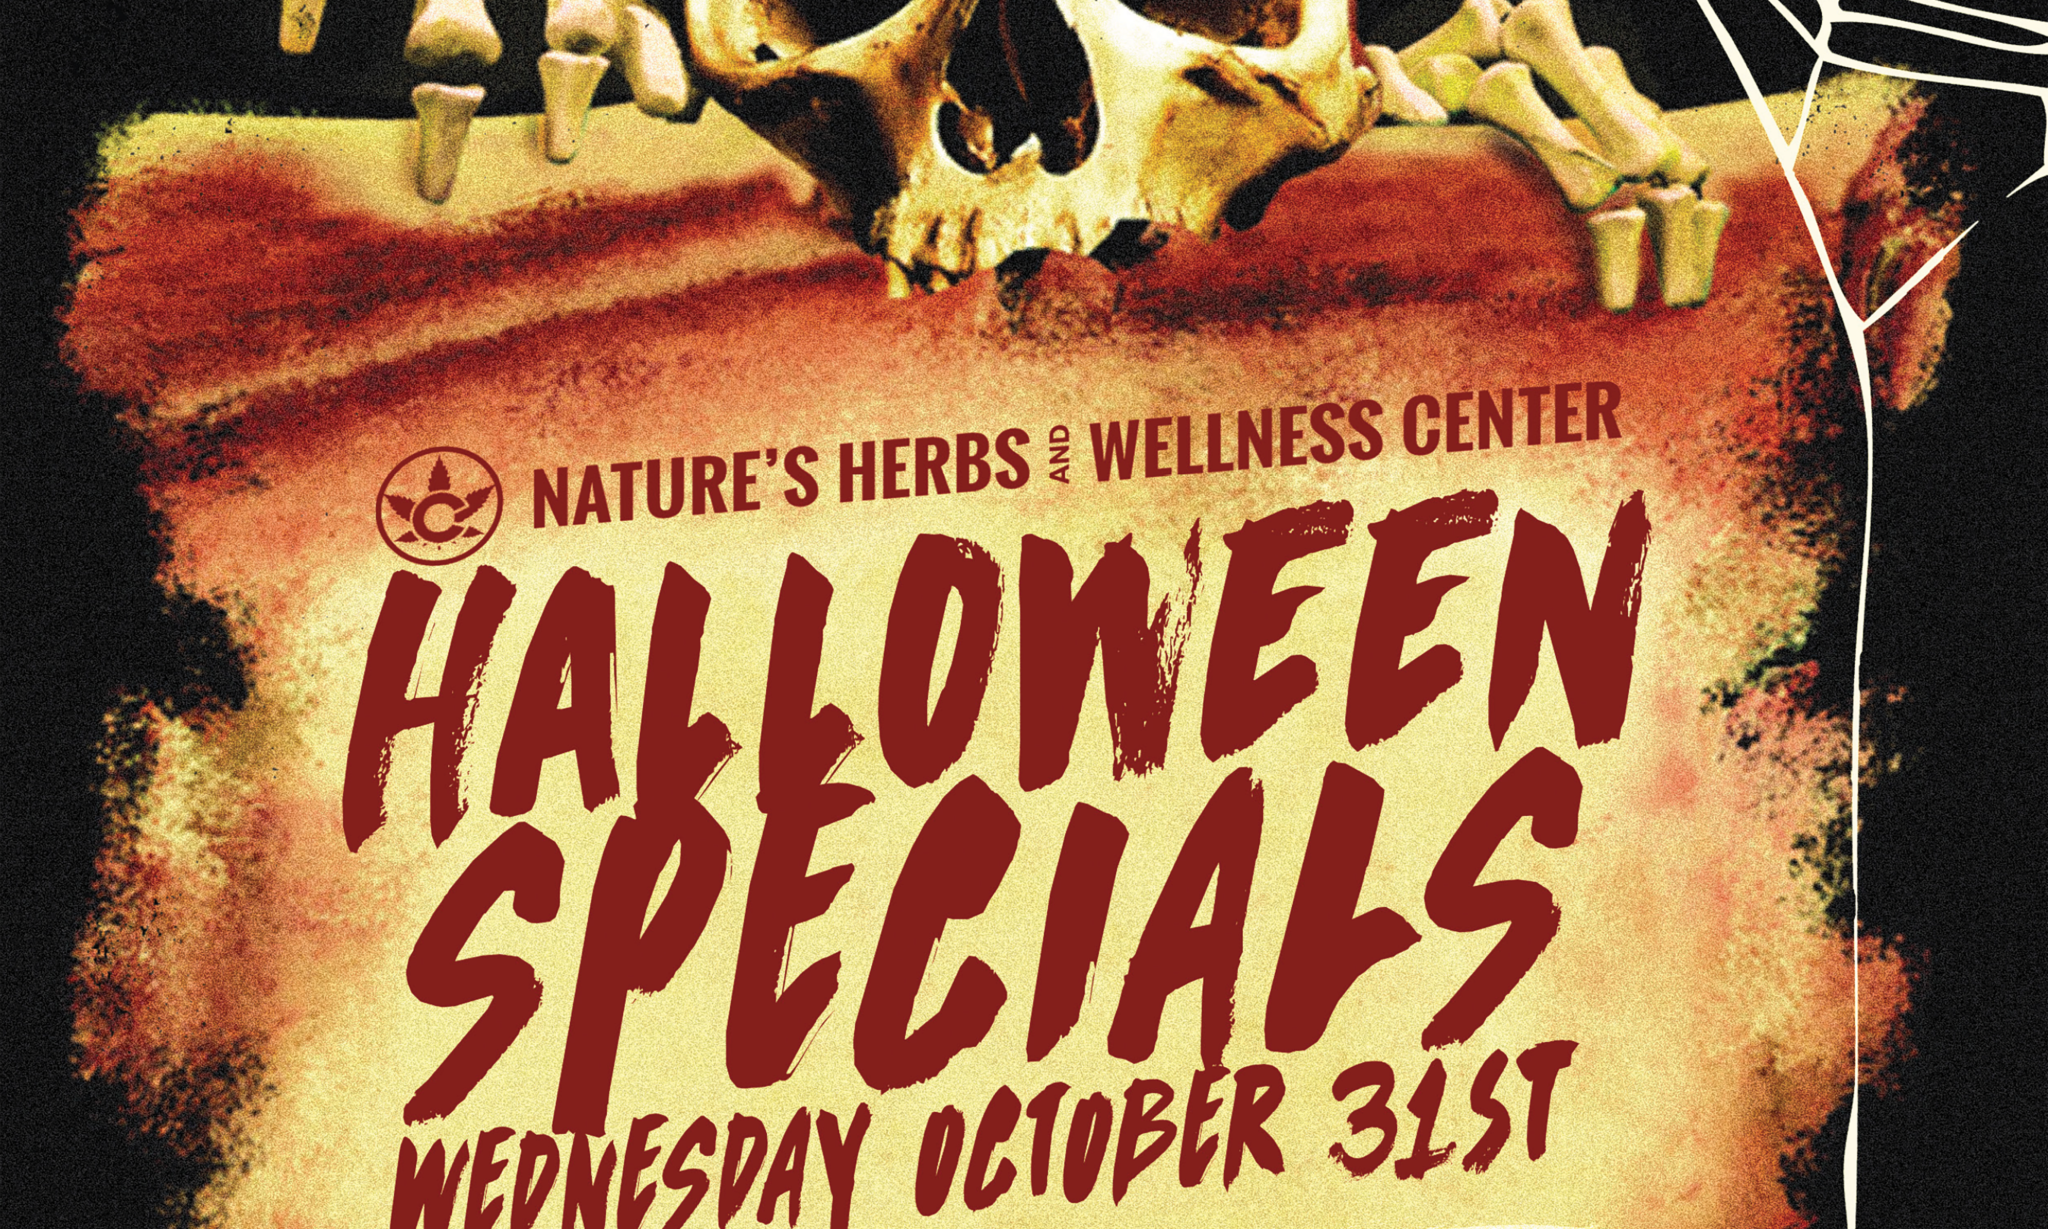 Nature's Herbs Halloween Specials